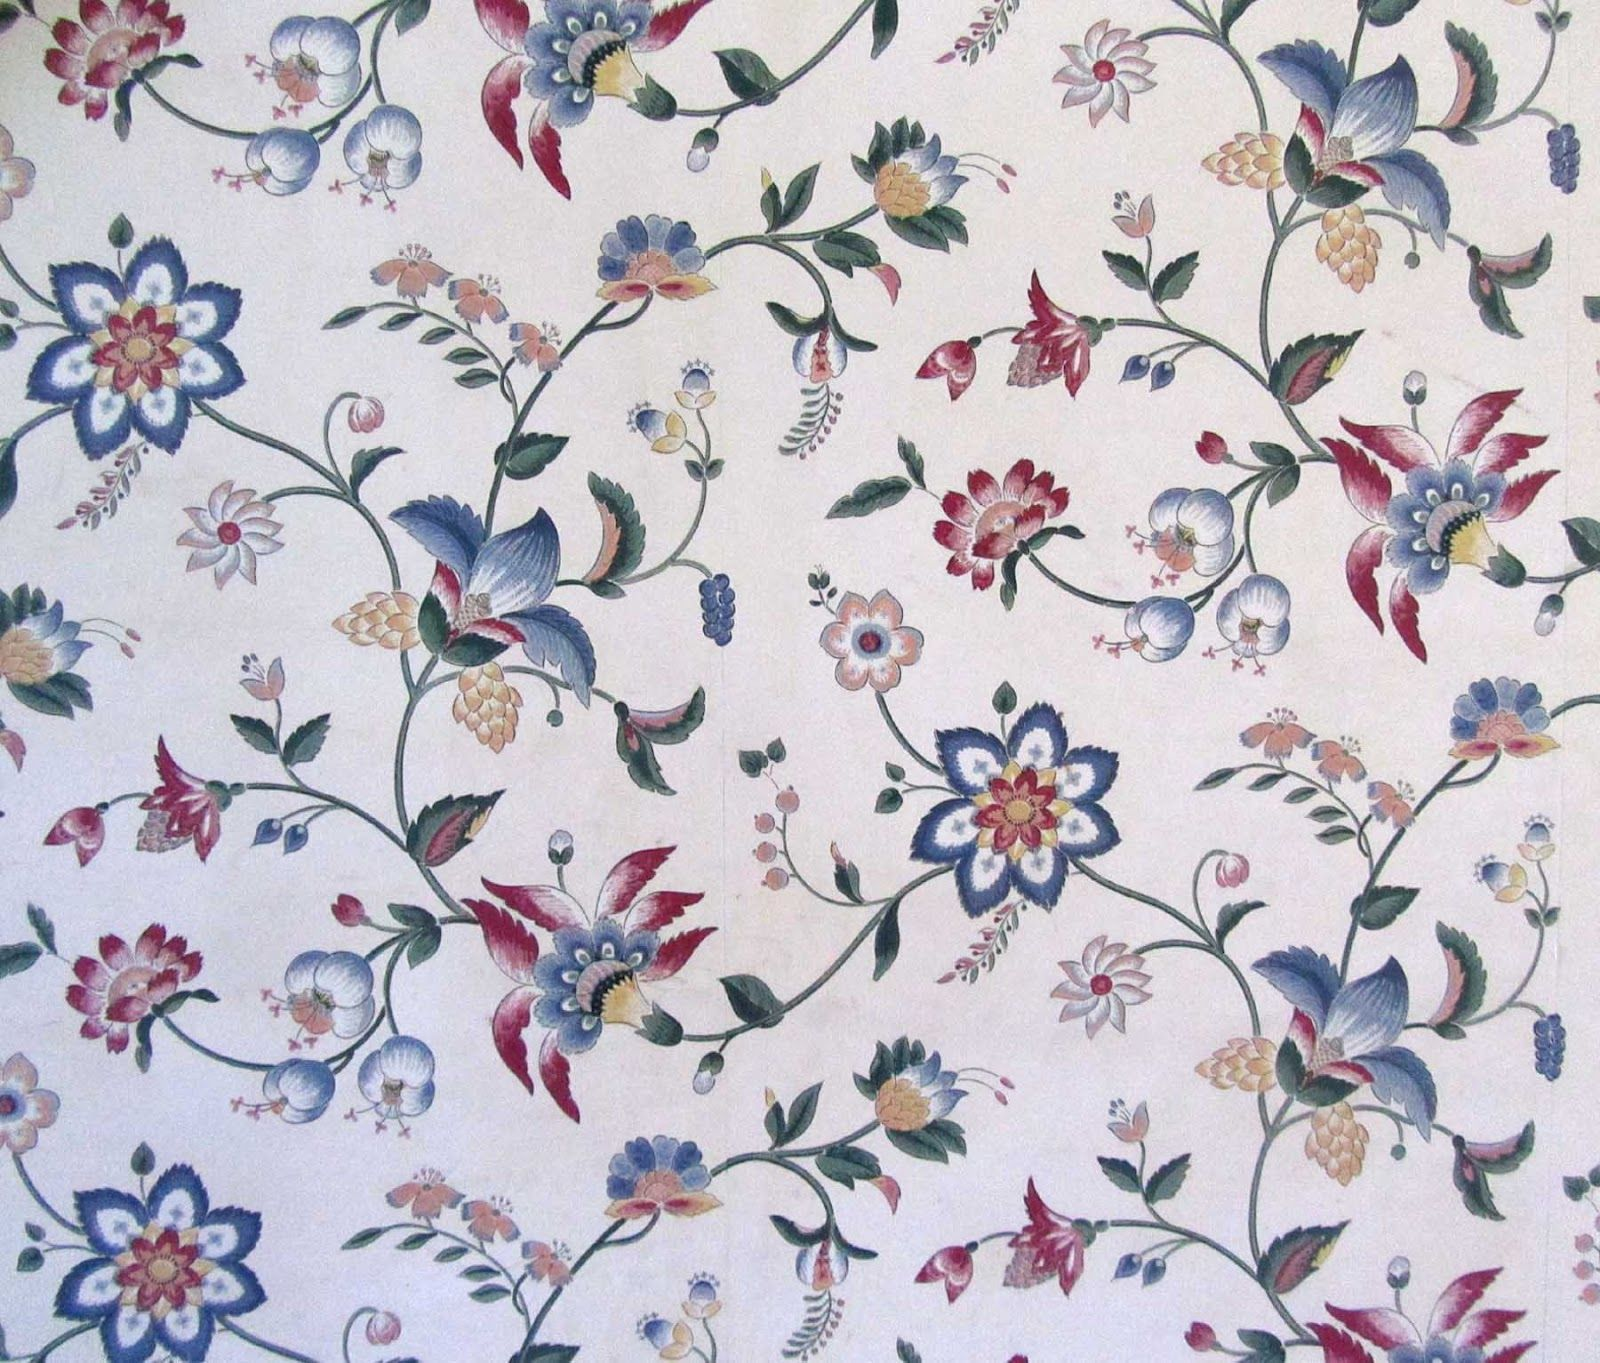 Vintage Flower Background | from house to home: